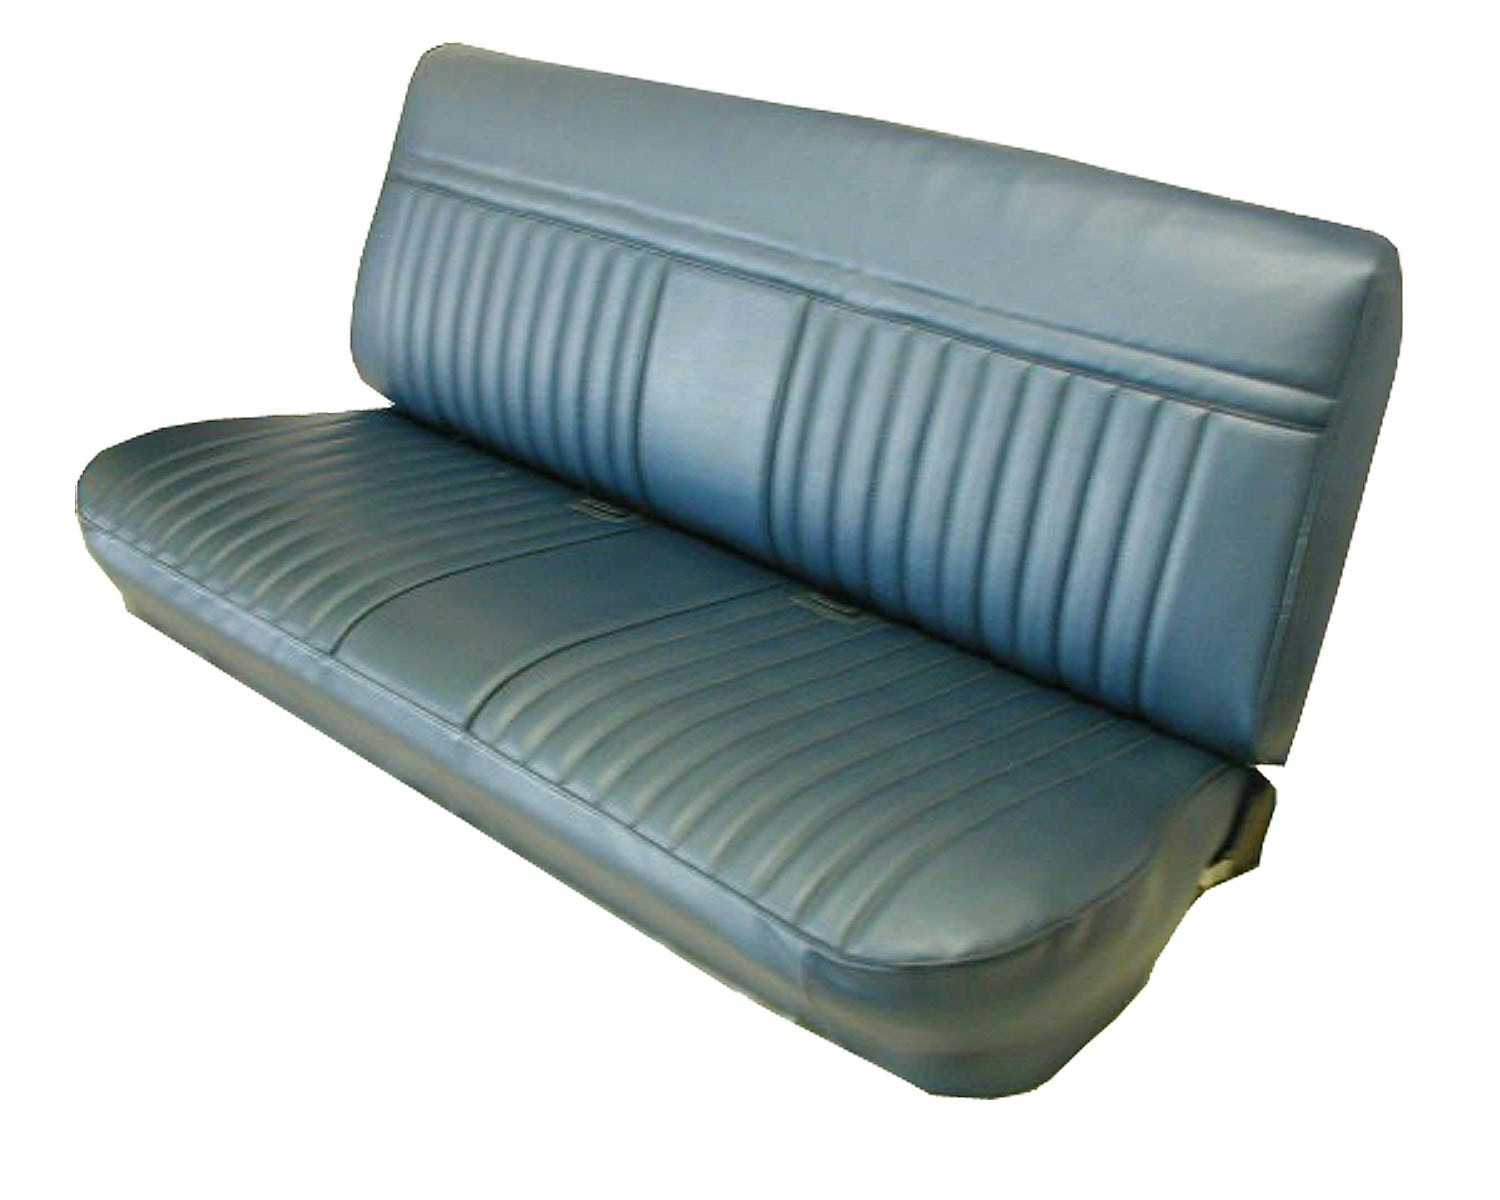 Superb img of 1981 1987 Chevrolet/GMC Standard Cab/Crew Cab Pickup Front Bench Seat with #314F5C color and 1500x1200 pixels